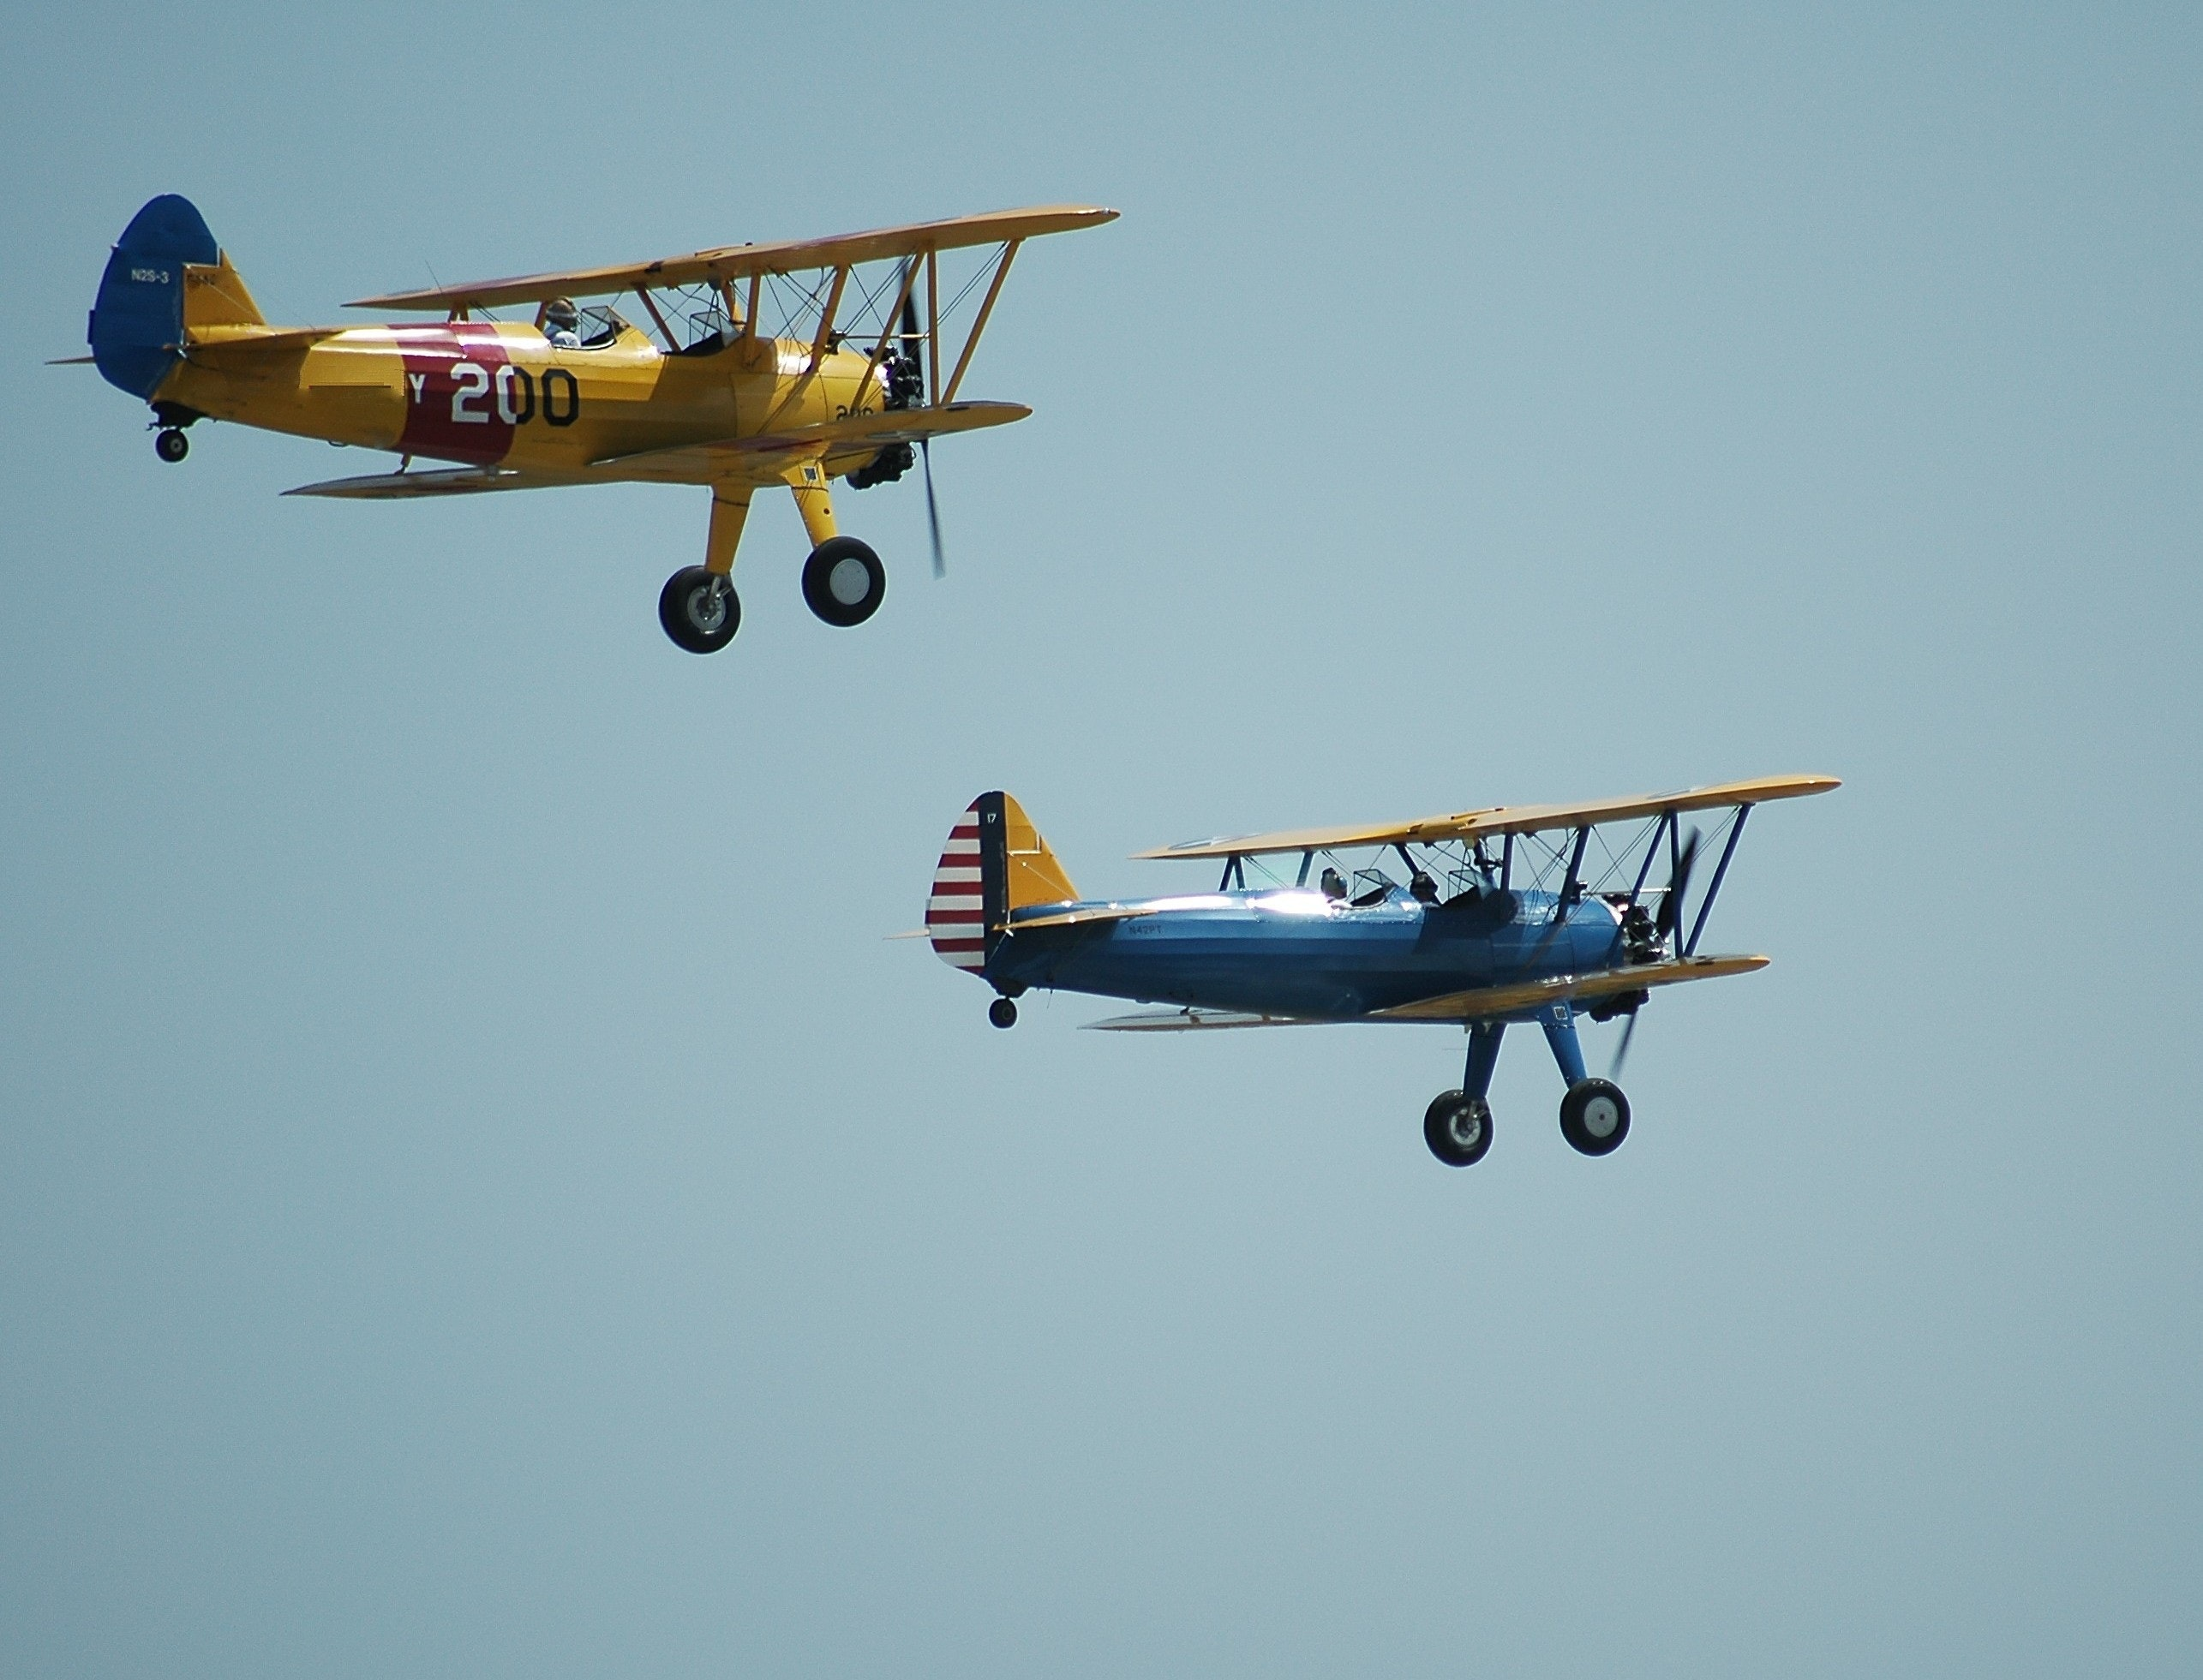 2 Biplanes Flying, Aeroplanes, Aircrafts, Airplanes, Aviation, HQ Photo